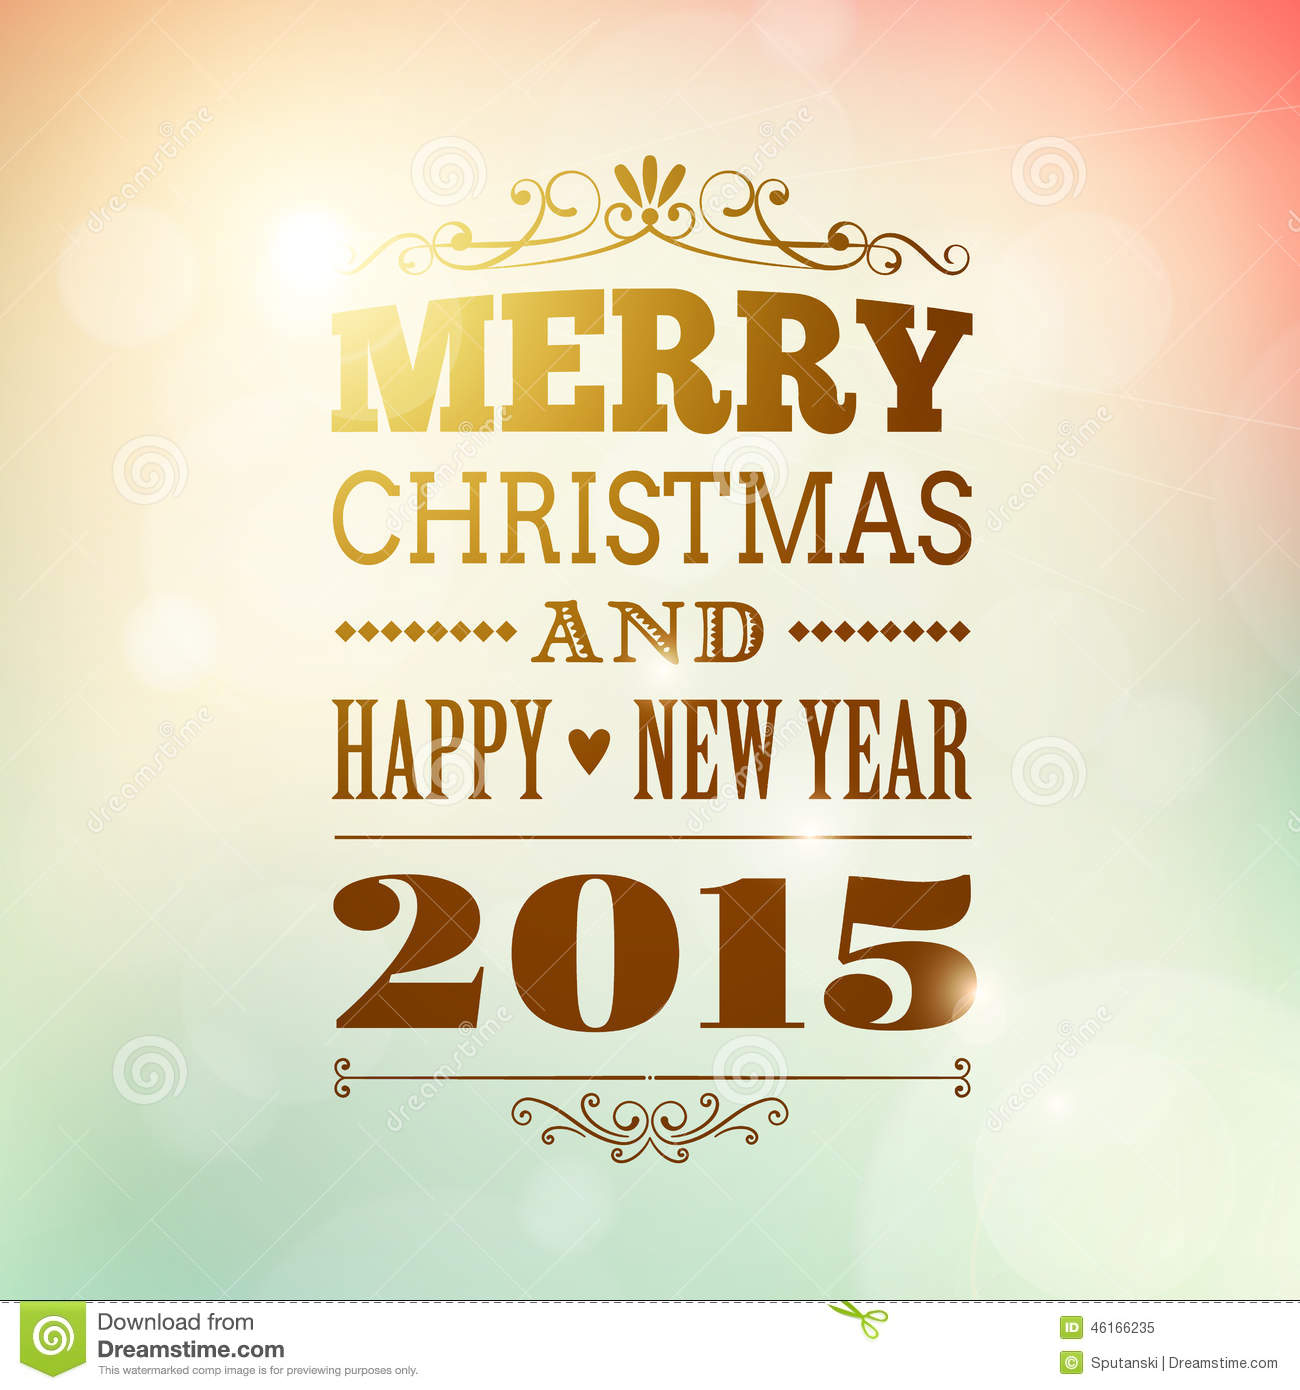 Merry Christmas And Happy New Year 2015 Poster Stock Vector